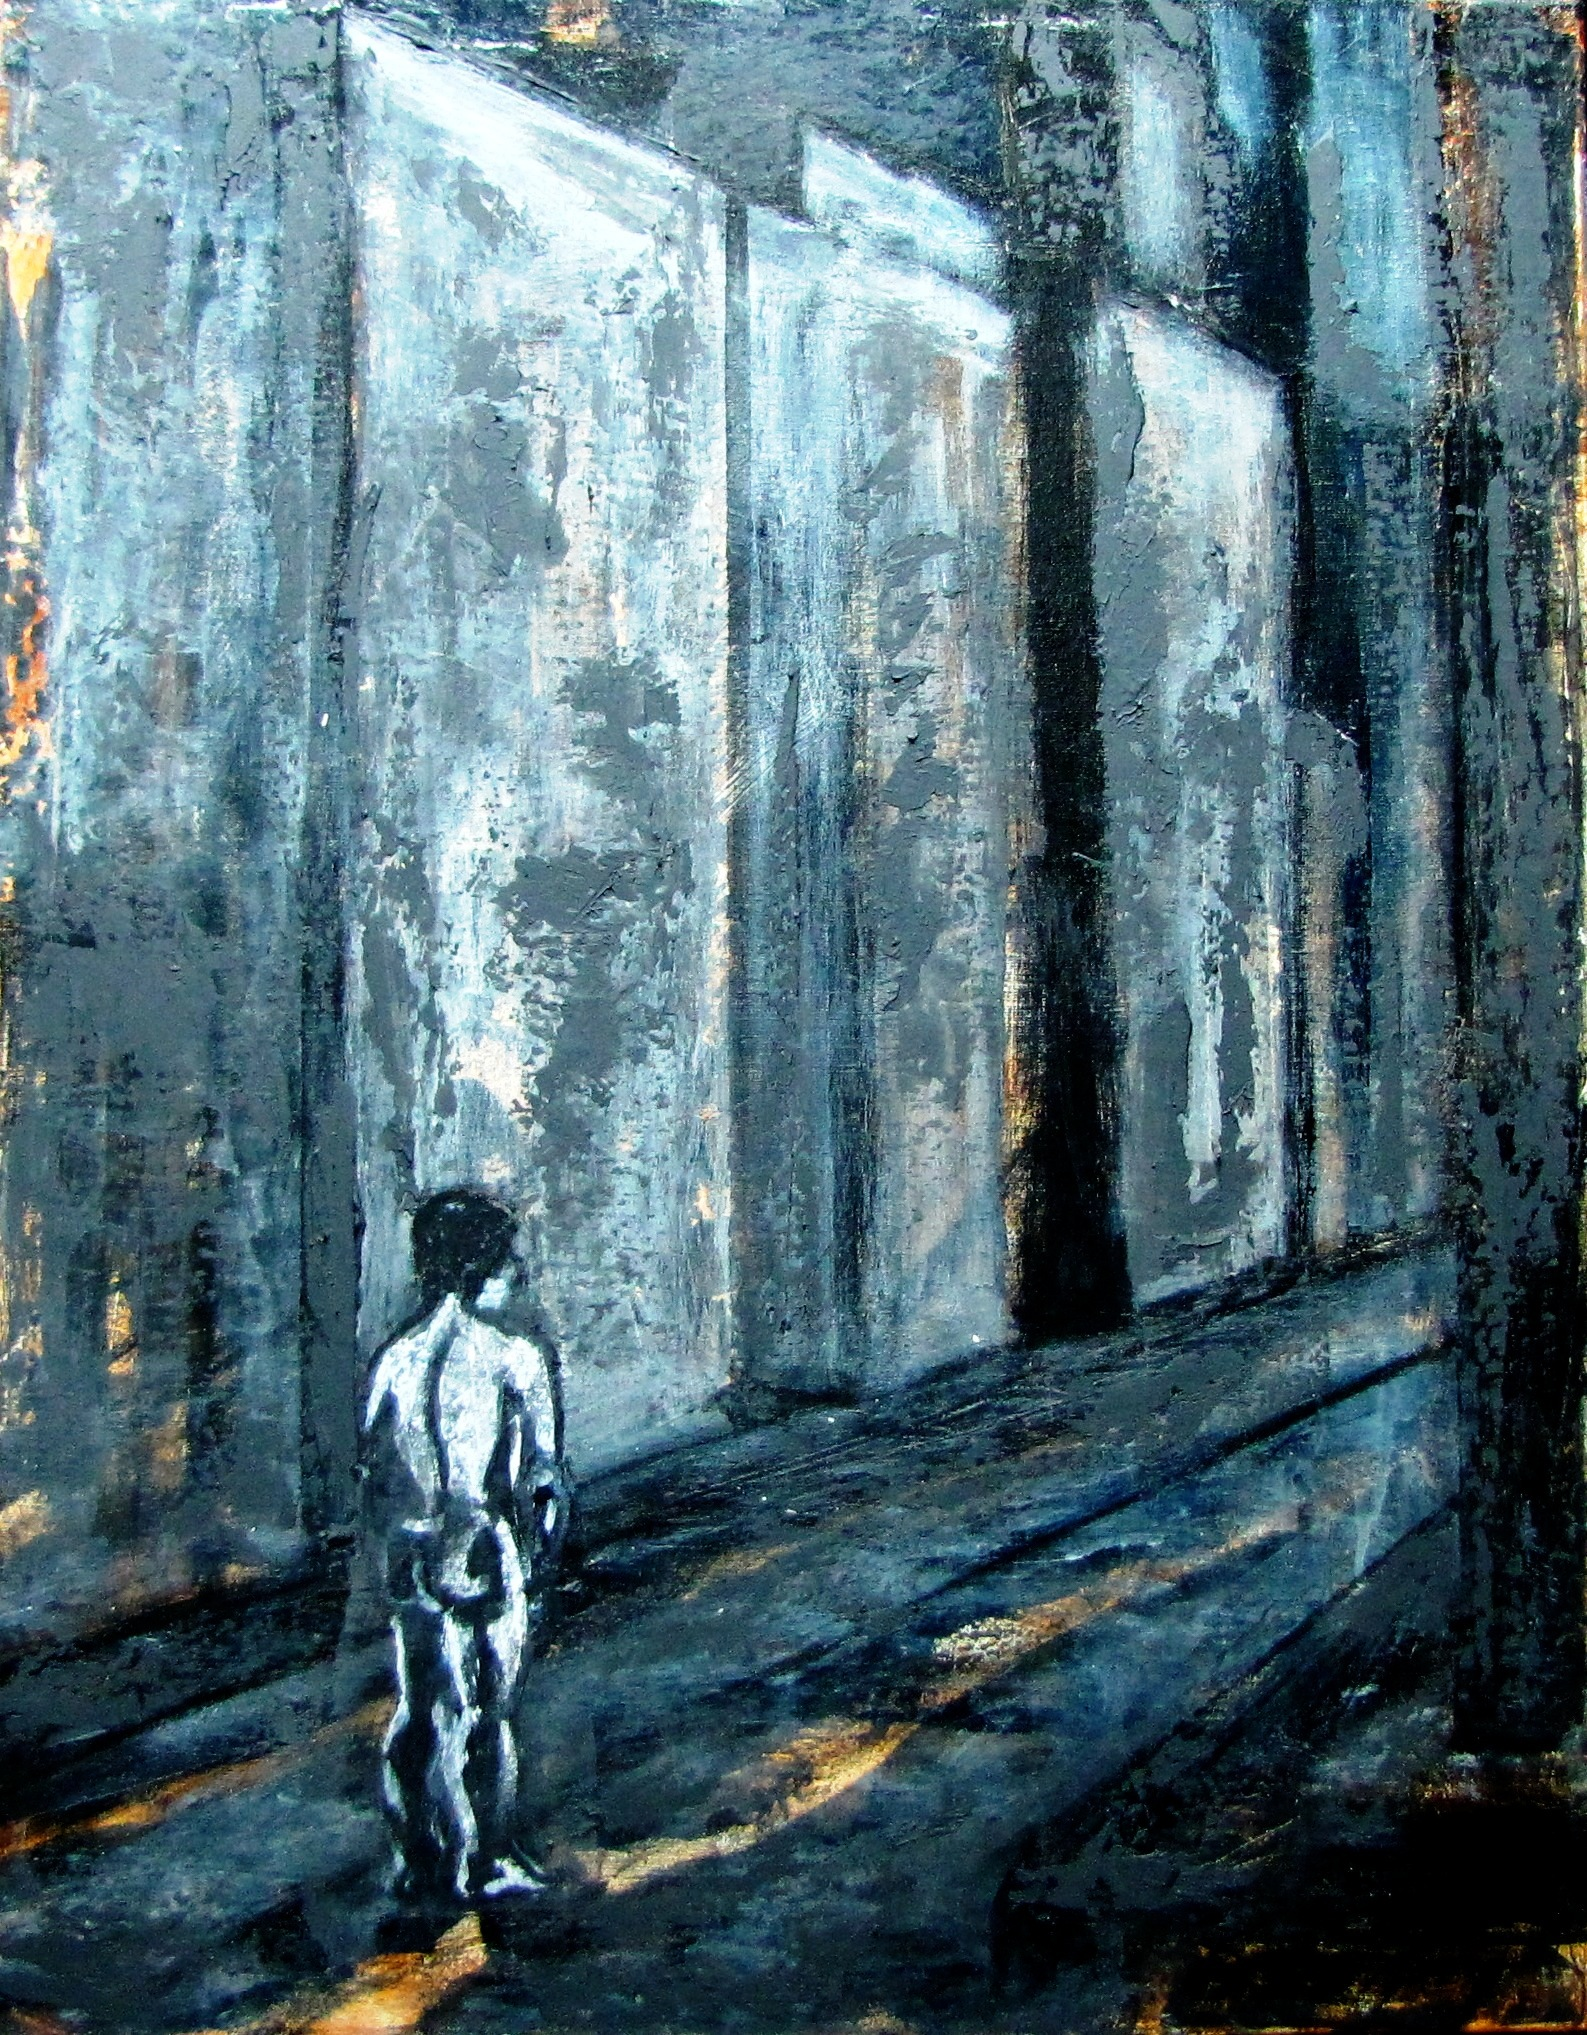 Concrete Gallery-Acrylic on canvas-28h x 22w in